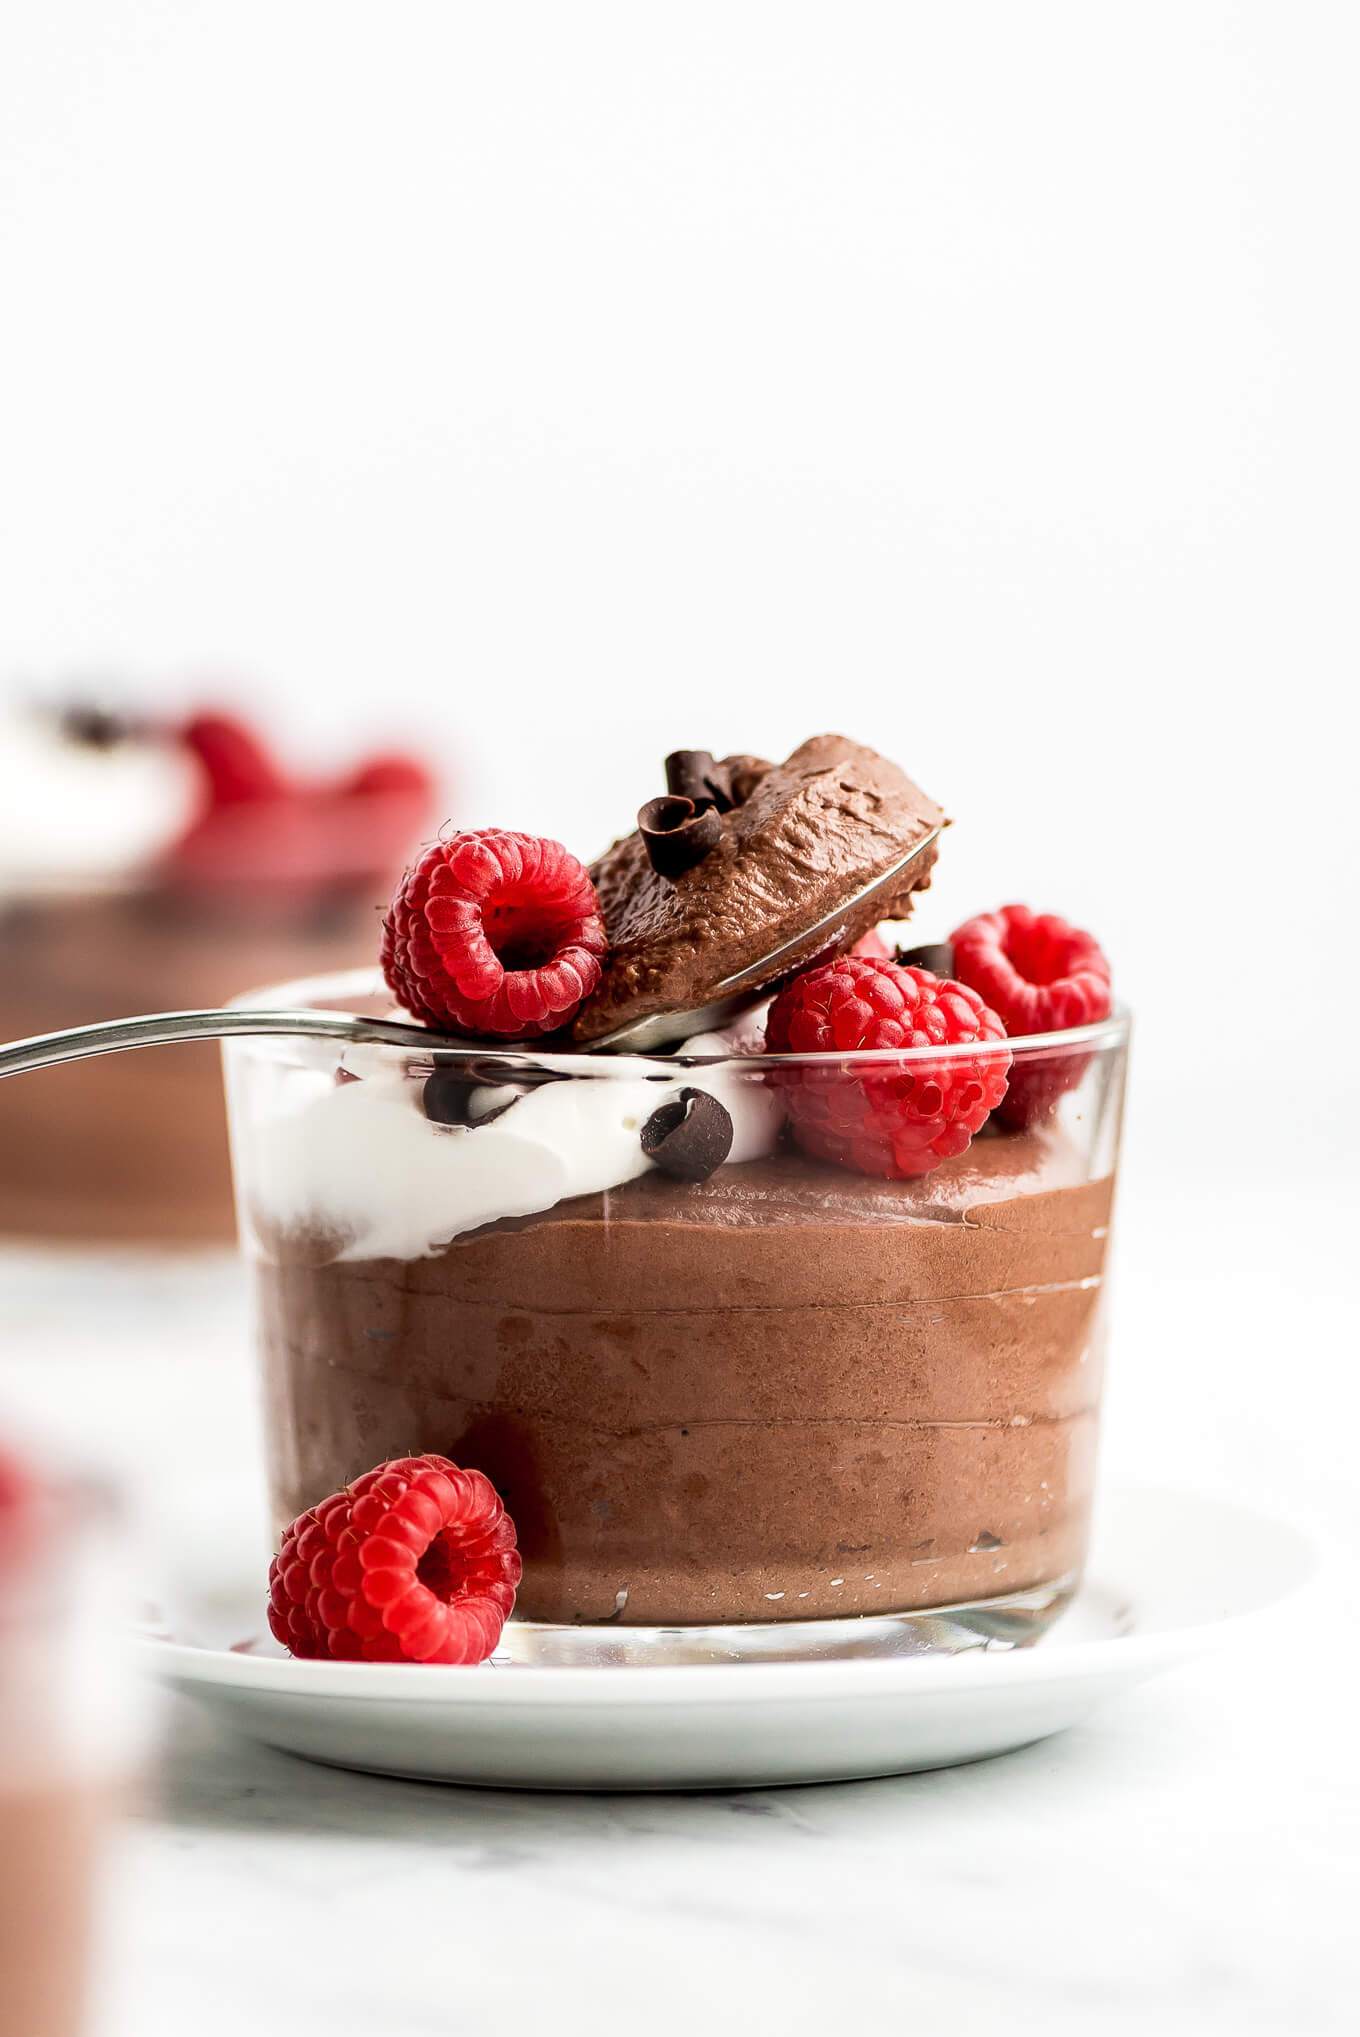 A glass of Chocolate Mousse topped with raspberries, chocolate curls, and whipped cream.